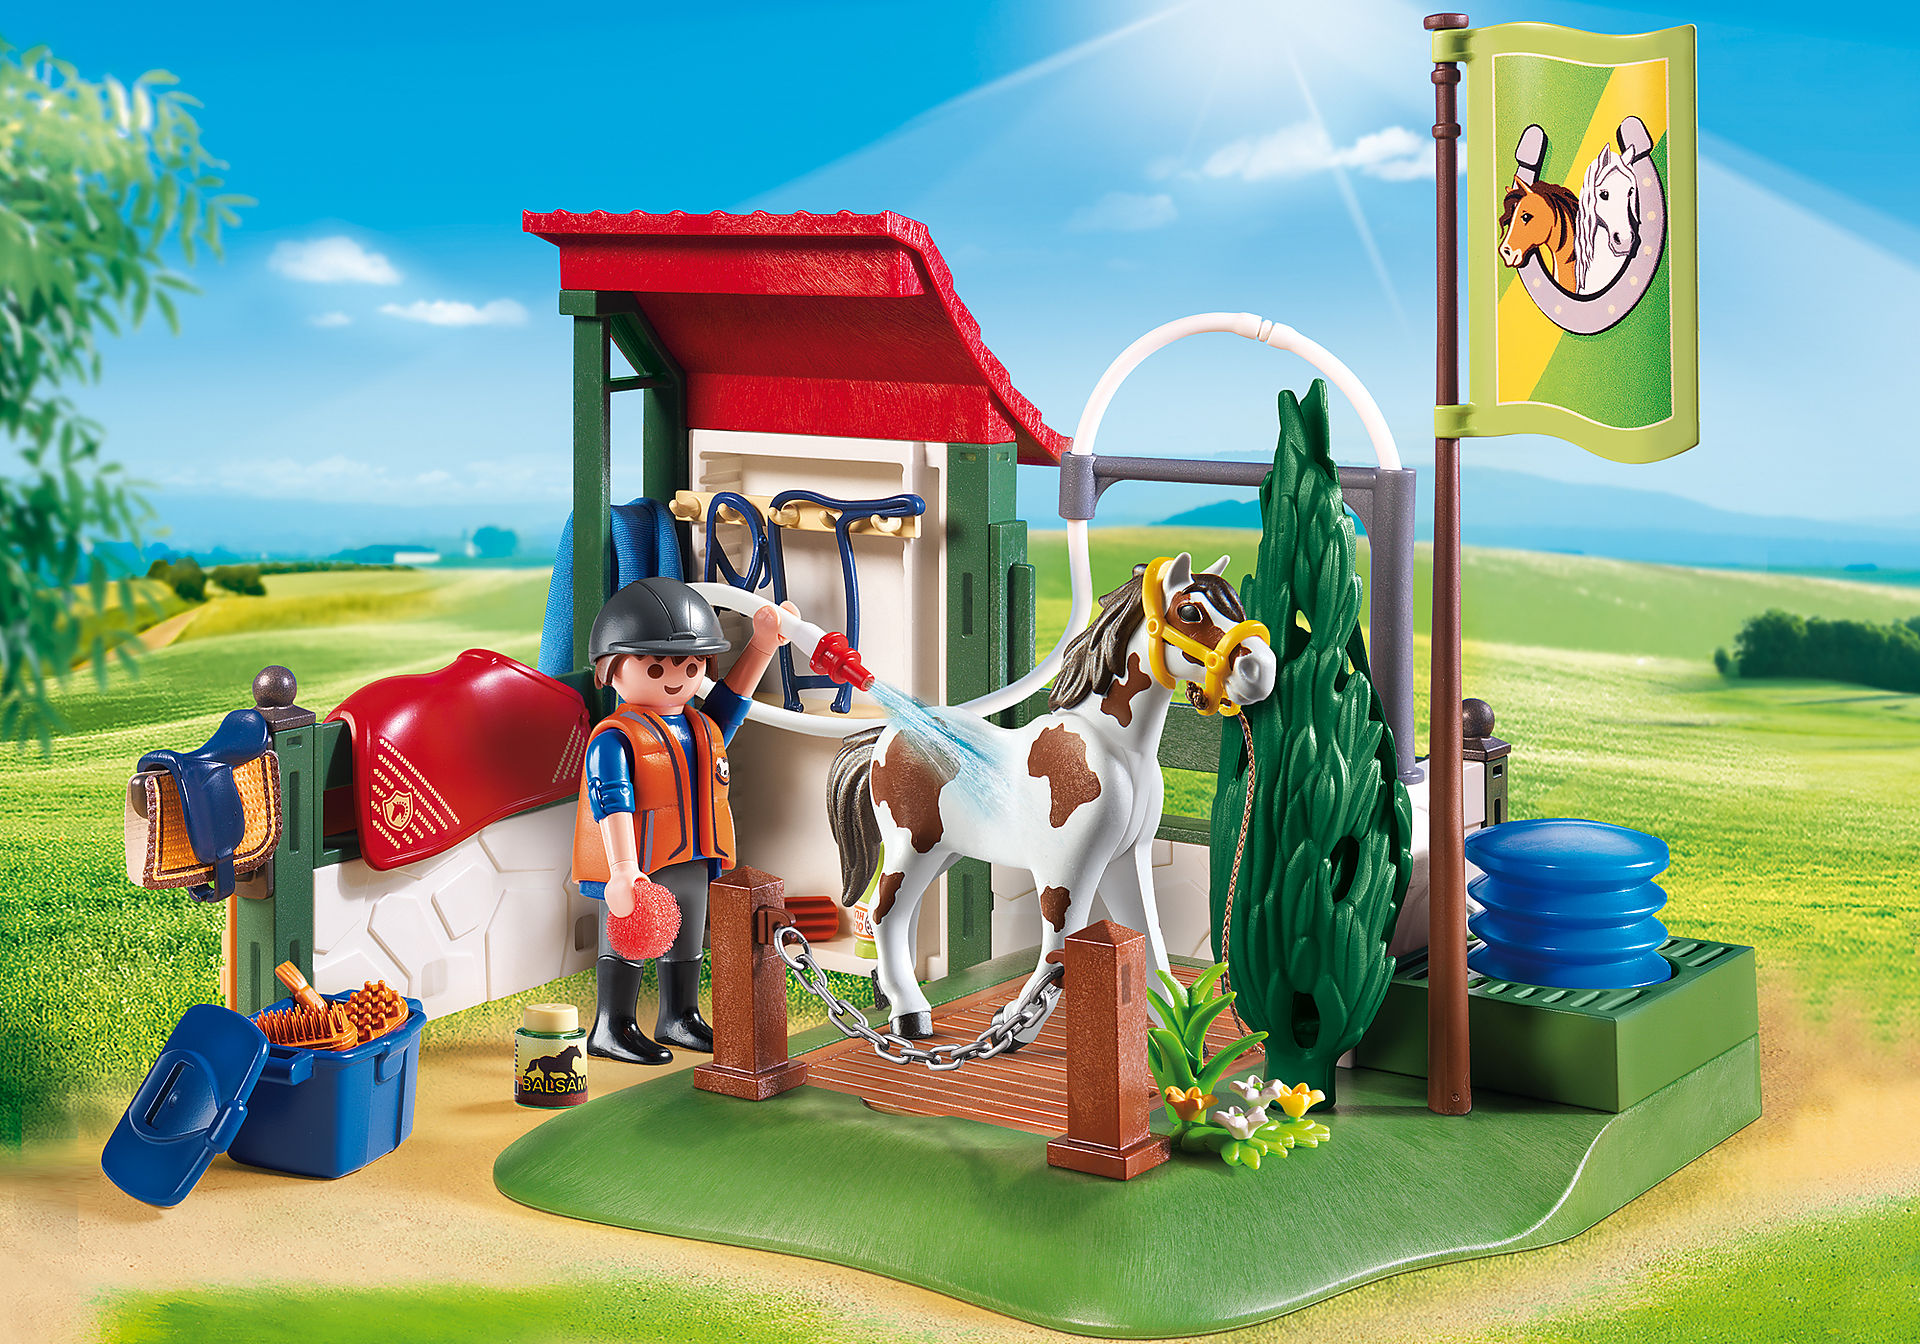 http://media.playmobil.com/i/playmobil/6929_product_detail/Box de lavage pour chevaux